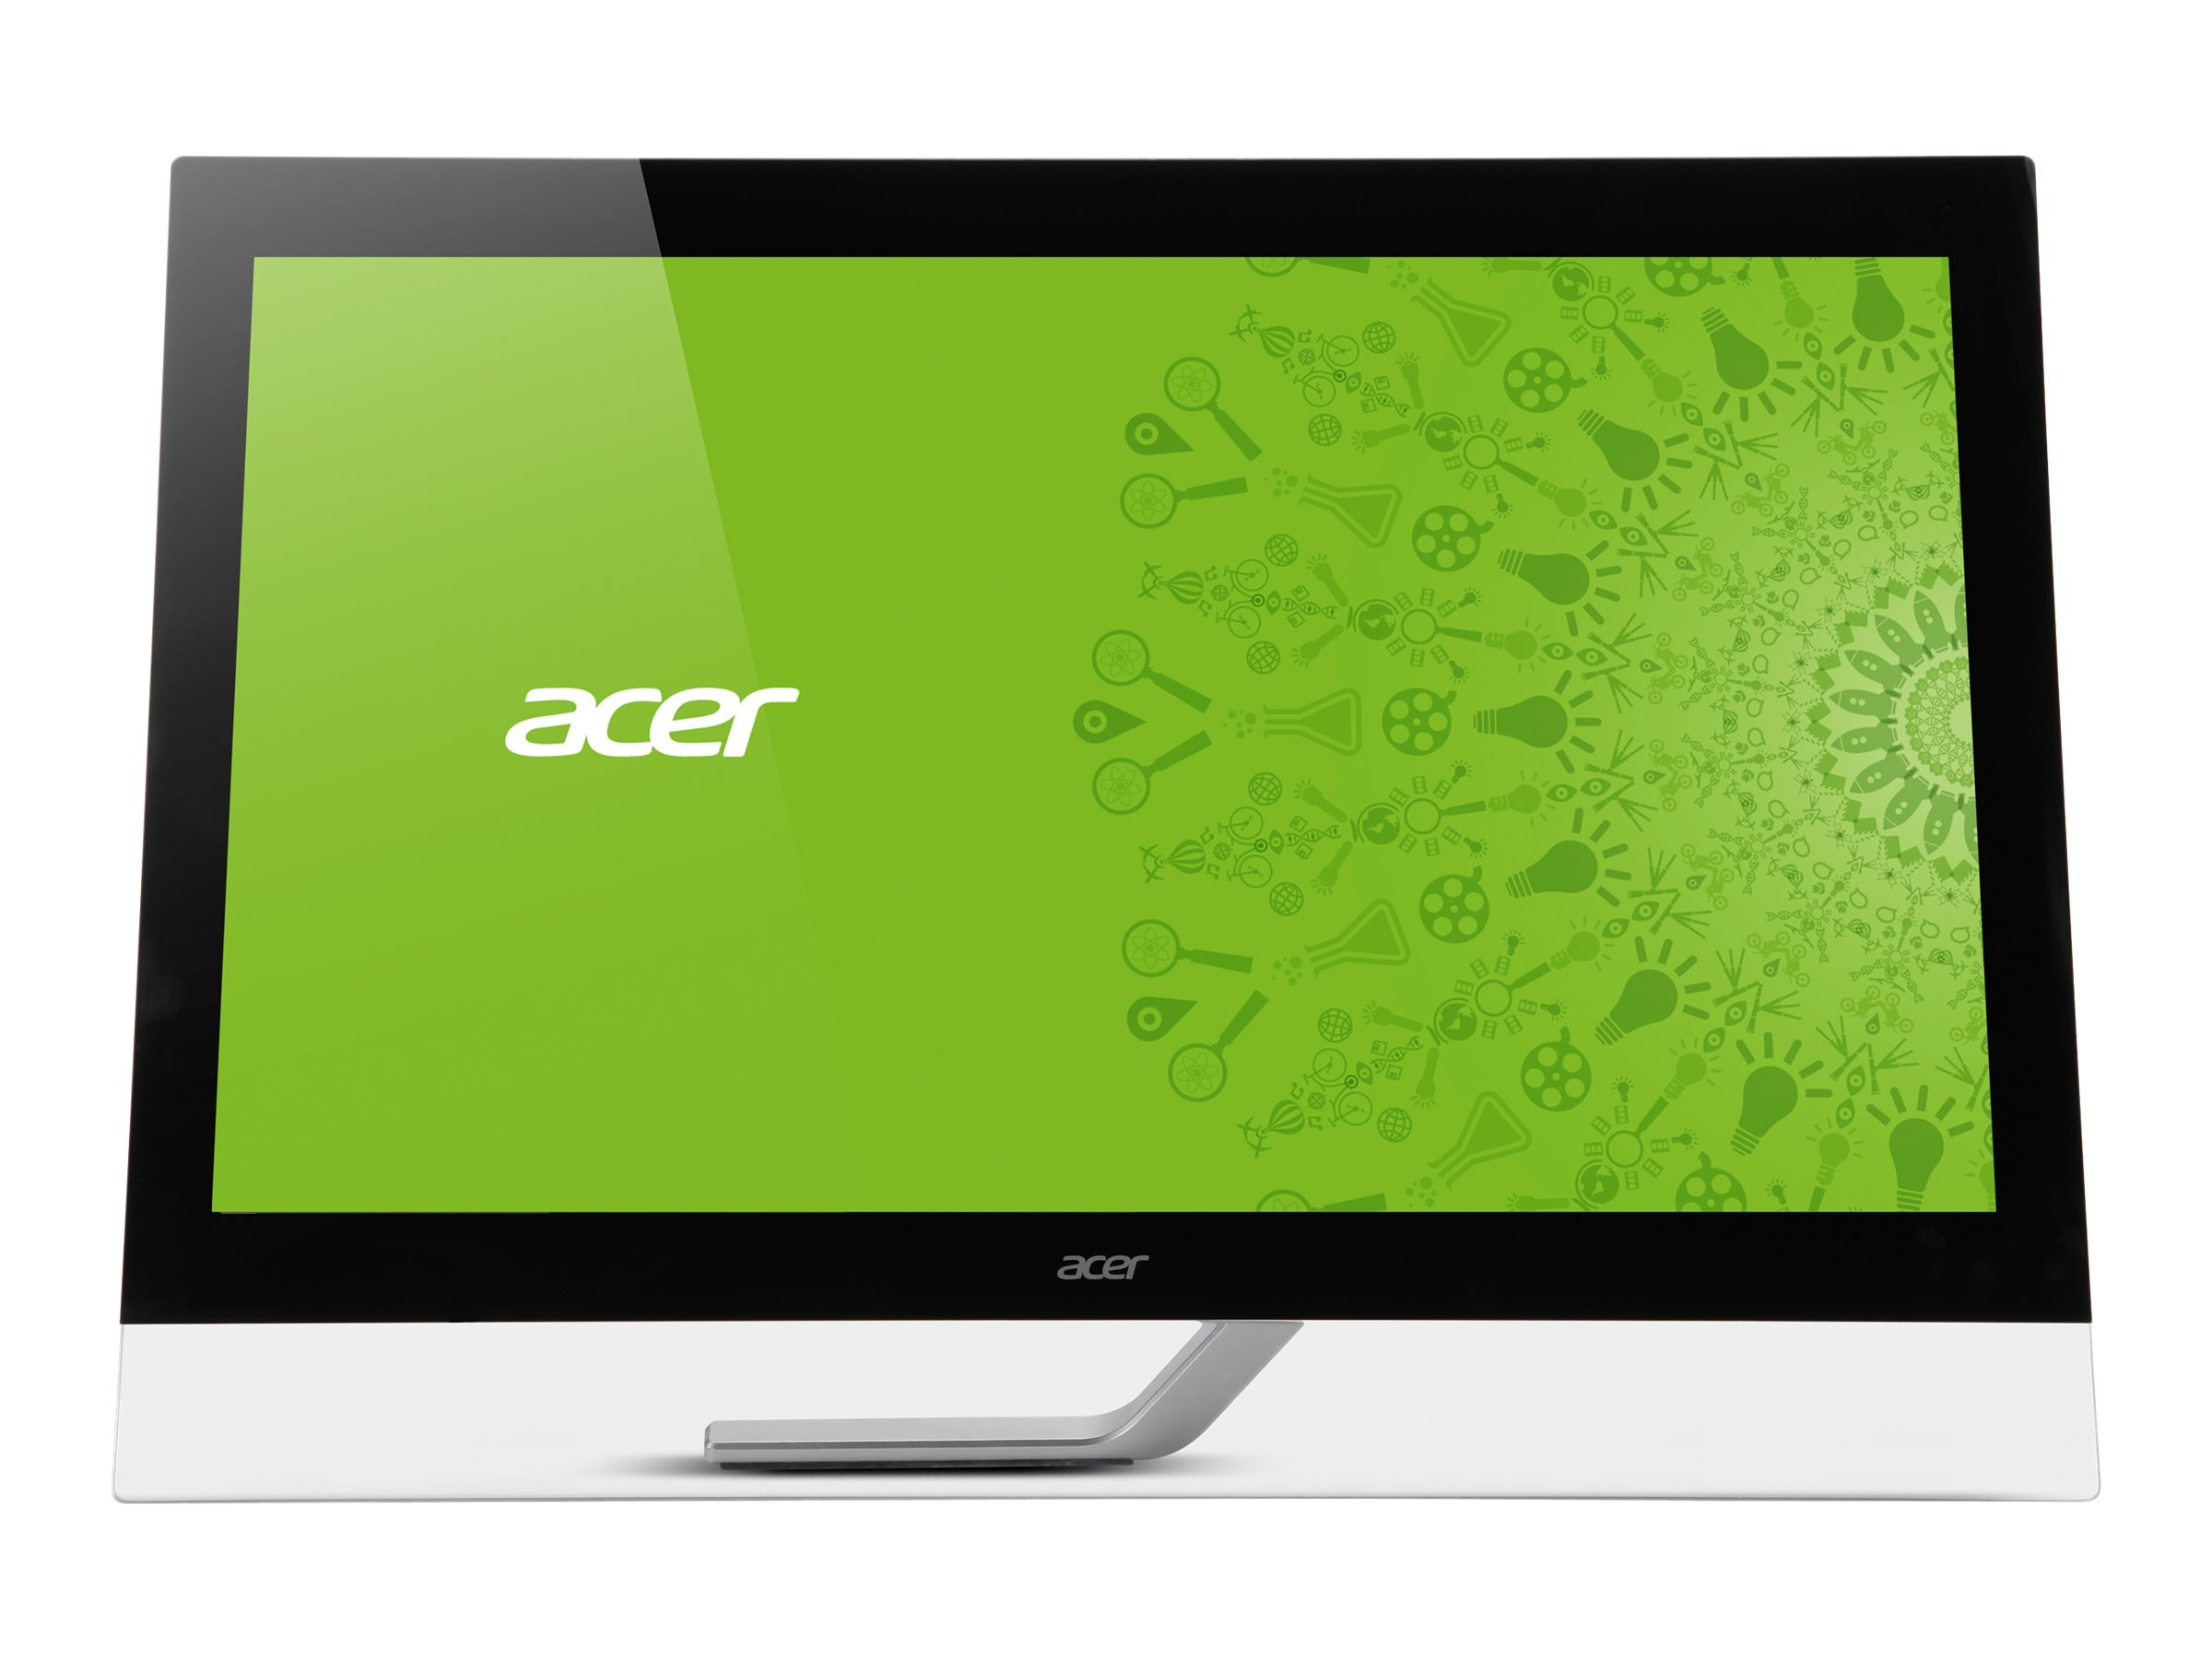 Acer T272HL bmjjz 27-Inch (1920 x 1080) Touch Screen Widescreen Monitor by Acer (Image #2)